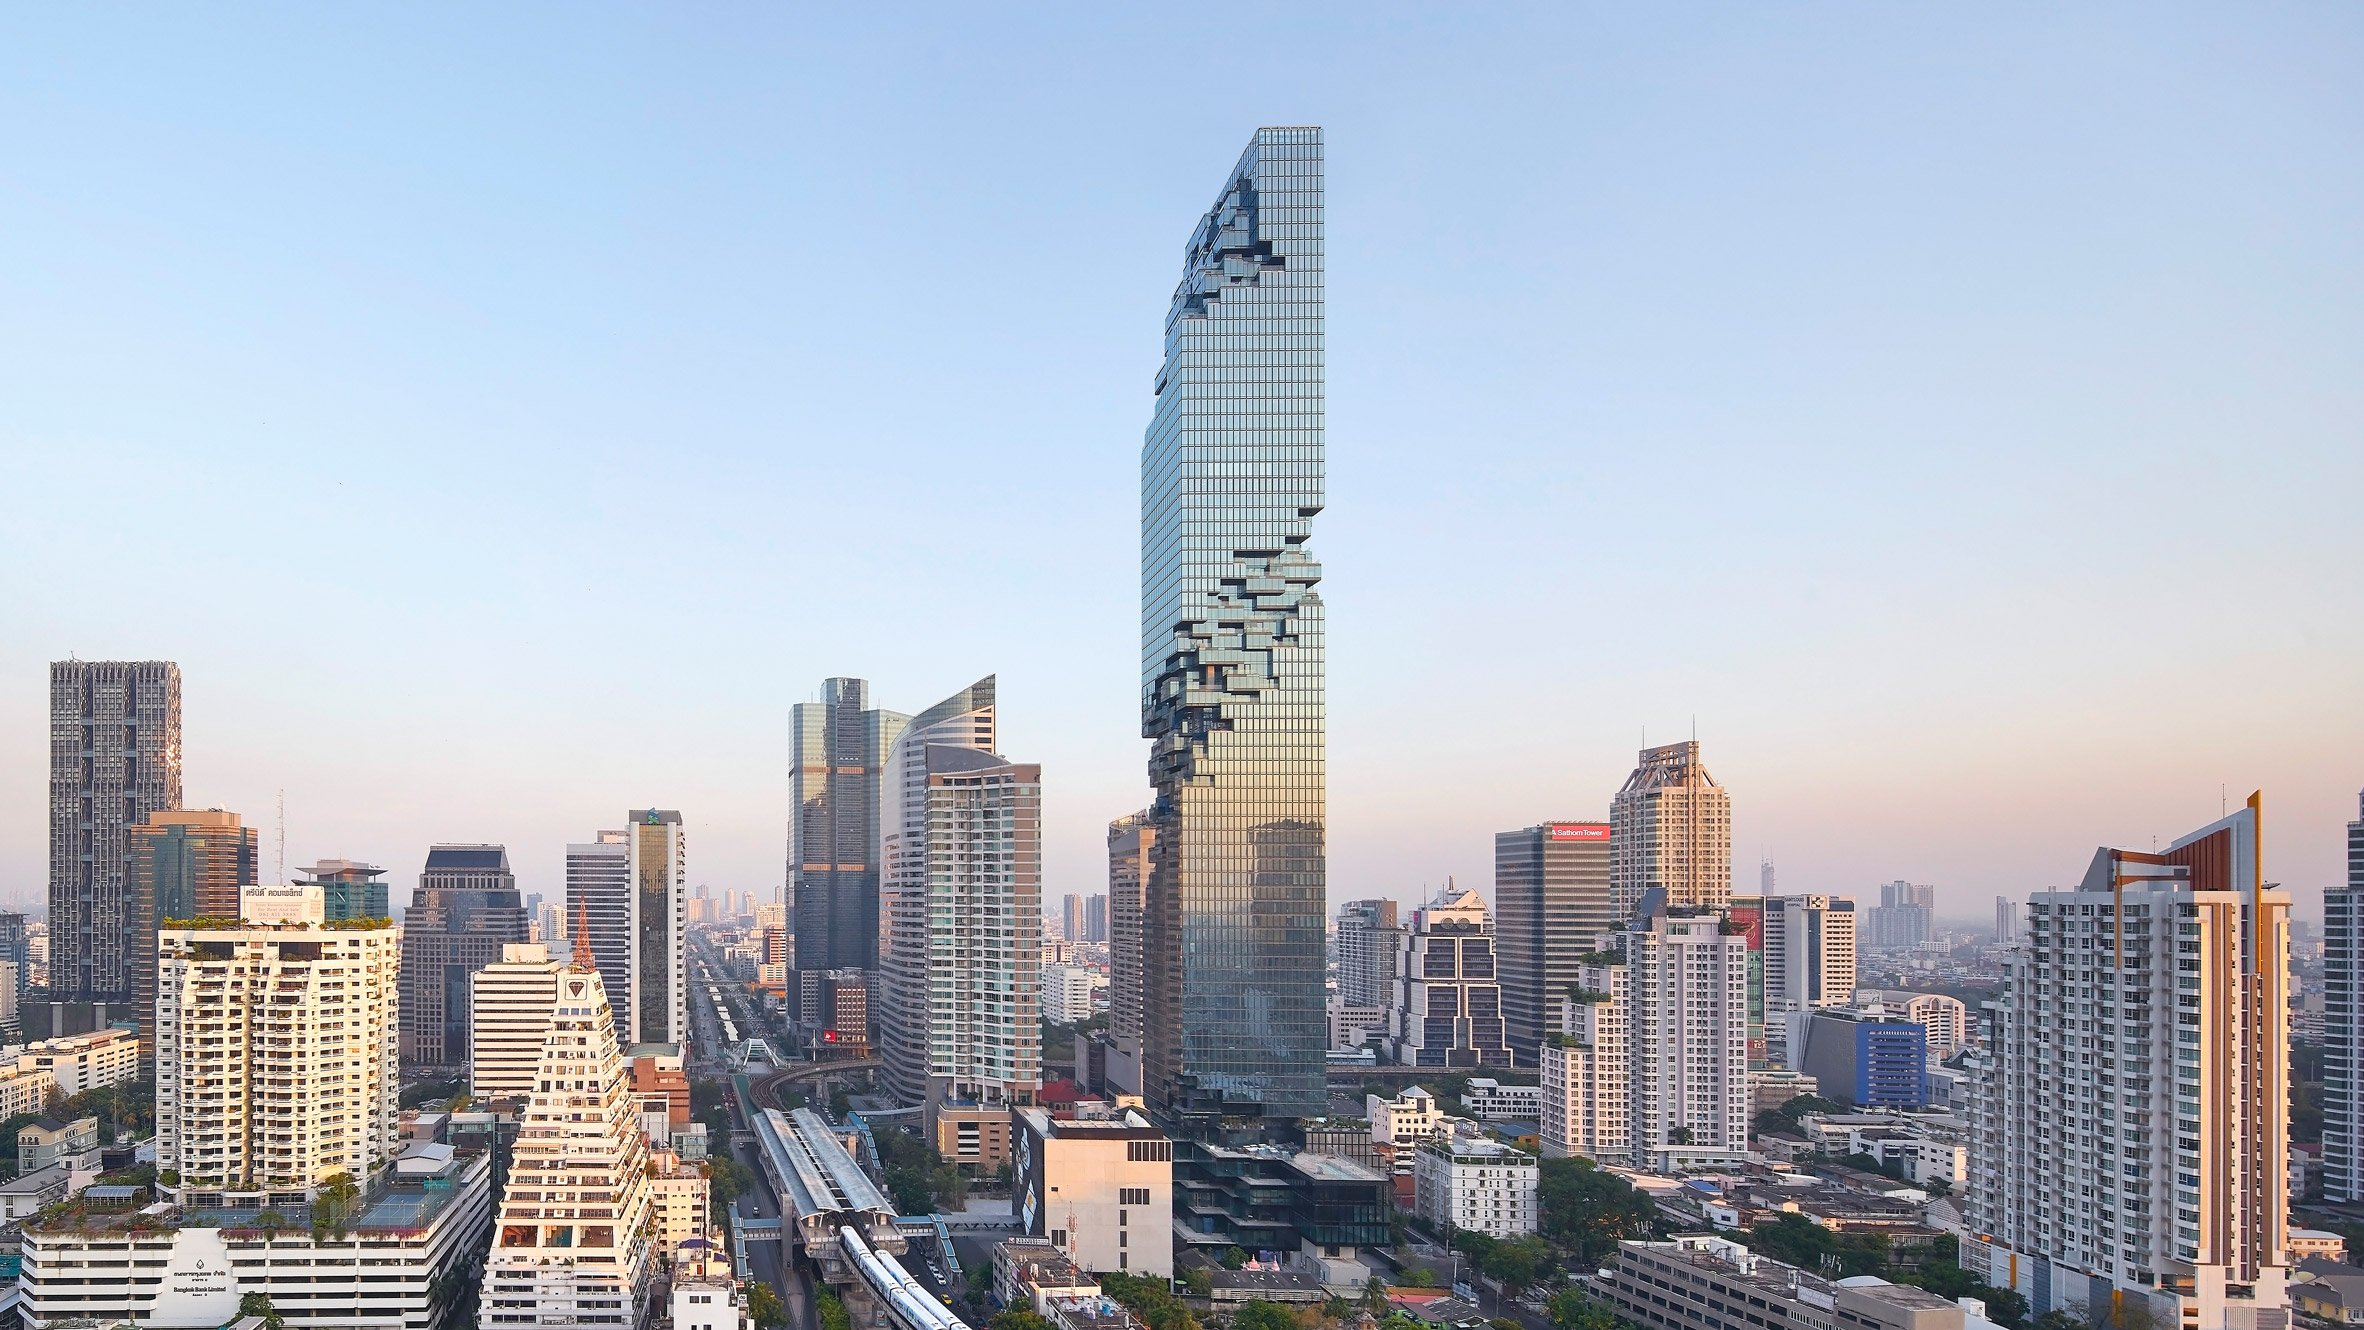 Ole scheeren s pixellated mahanakhon tower photographed by for Architecture buro